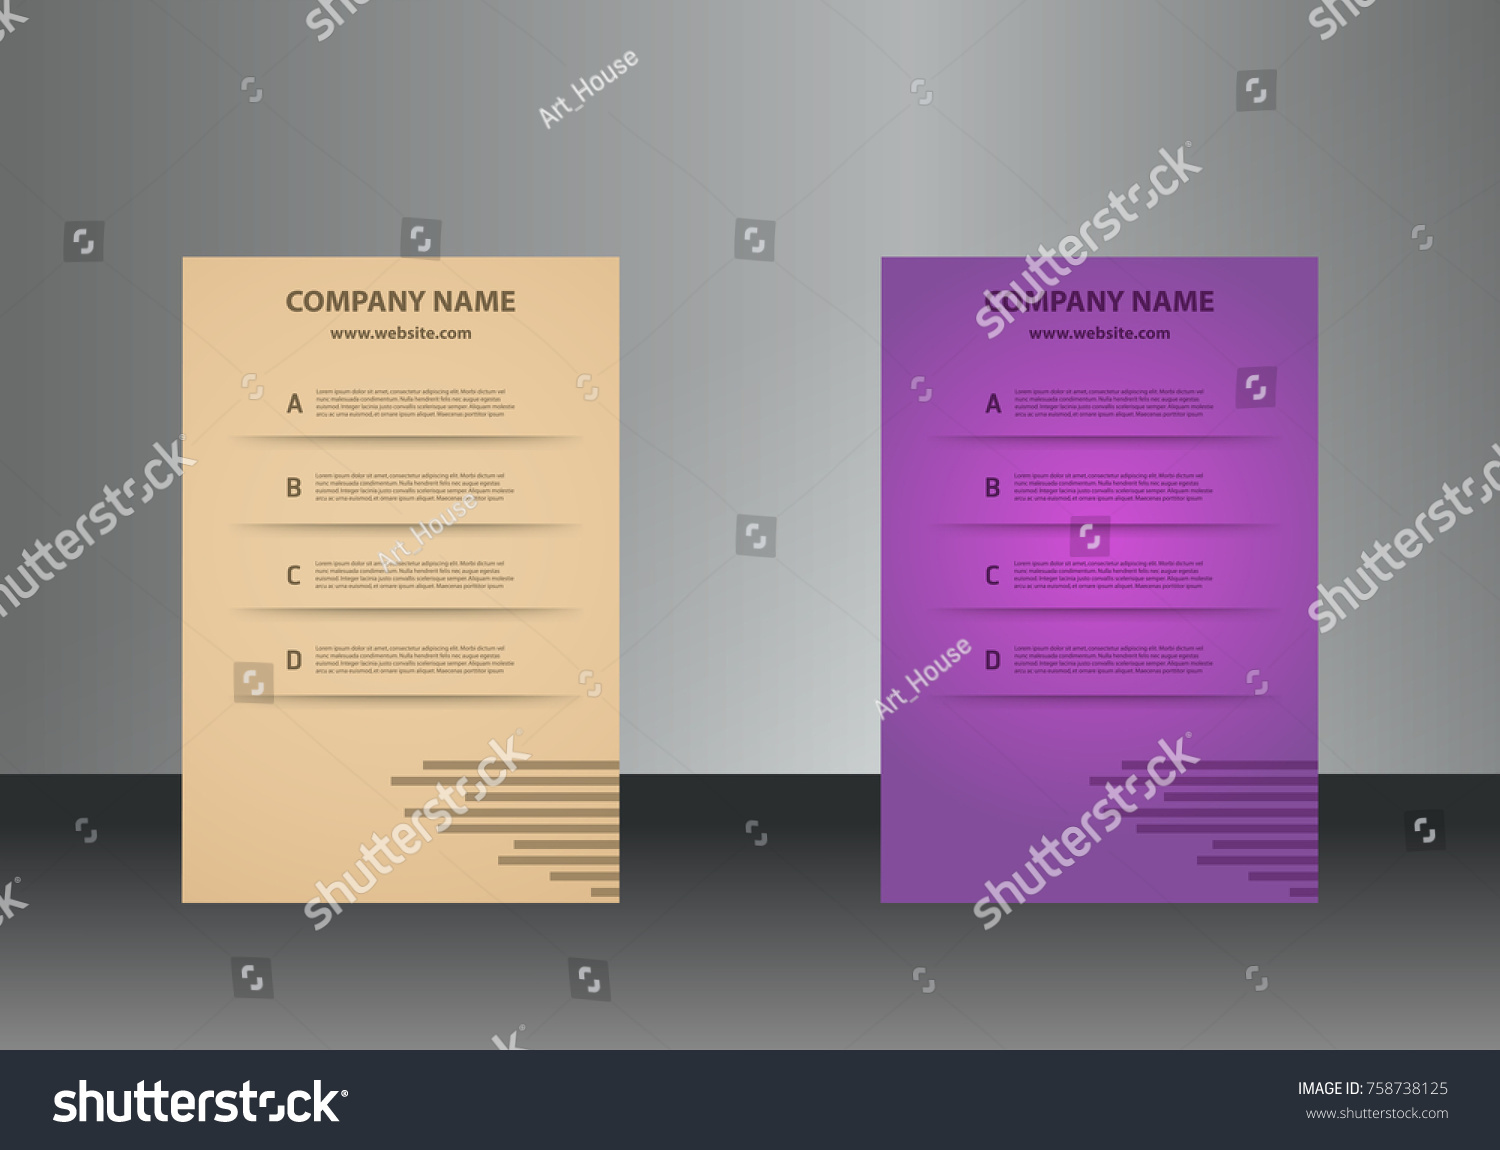 Vertical business cards print template personal stock vector vertical business cards print template personal business card with company logo in colors sets magicingreecefo Gallery